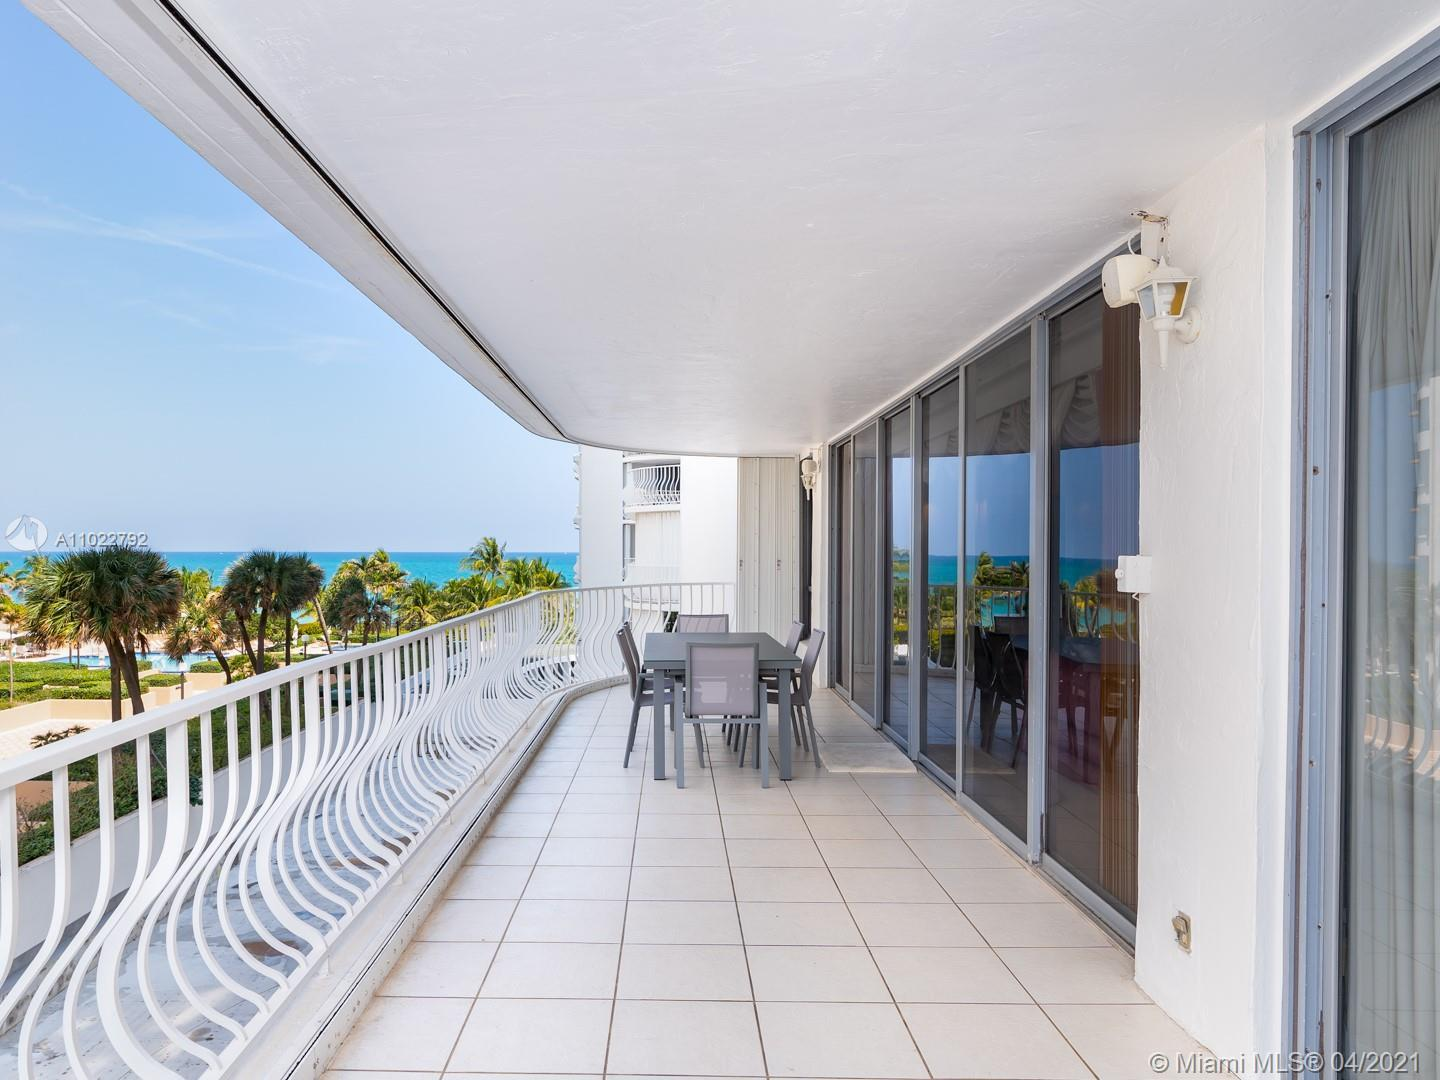 A 2 bedrooms and 3 baths unit in prestigious Bal Harbour 101 oceanfront building. A rare find, sold